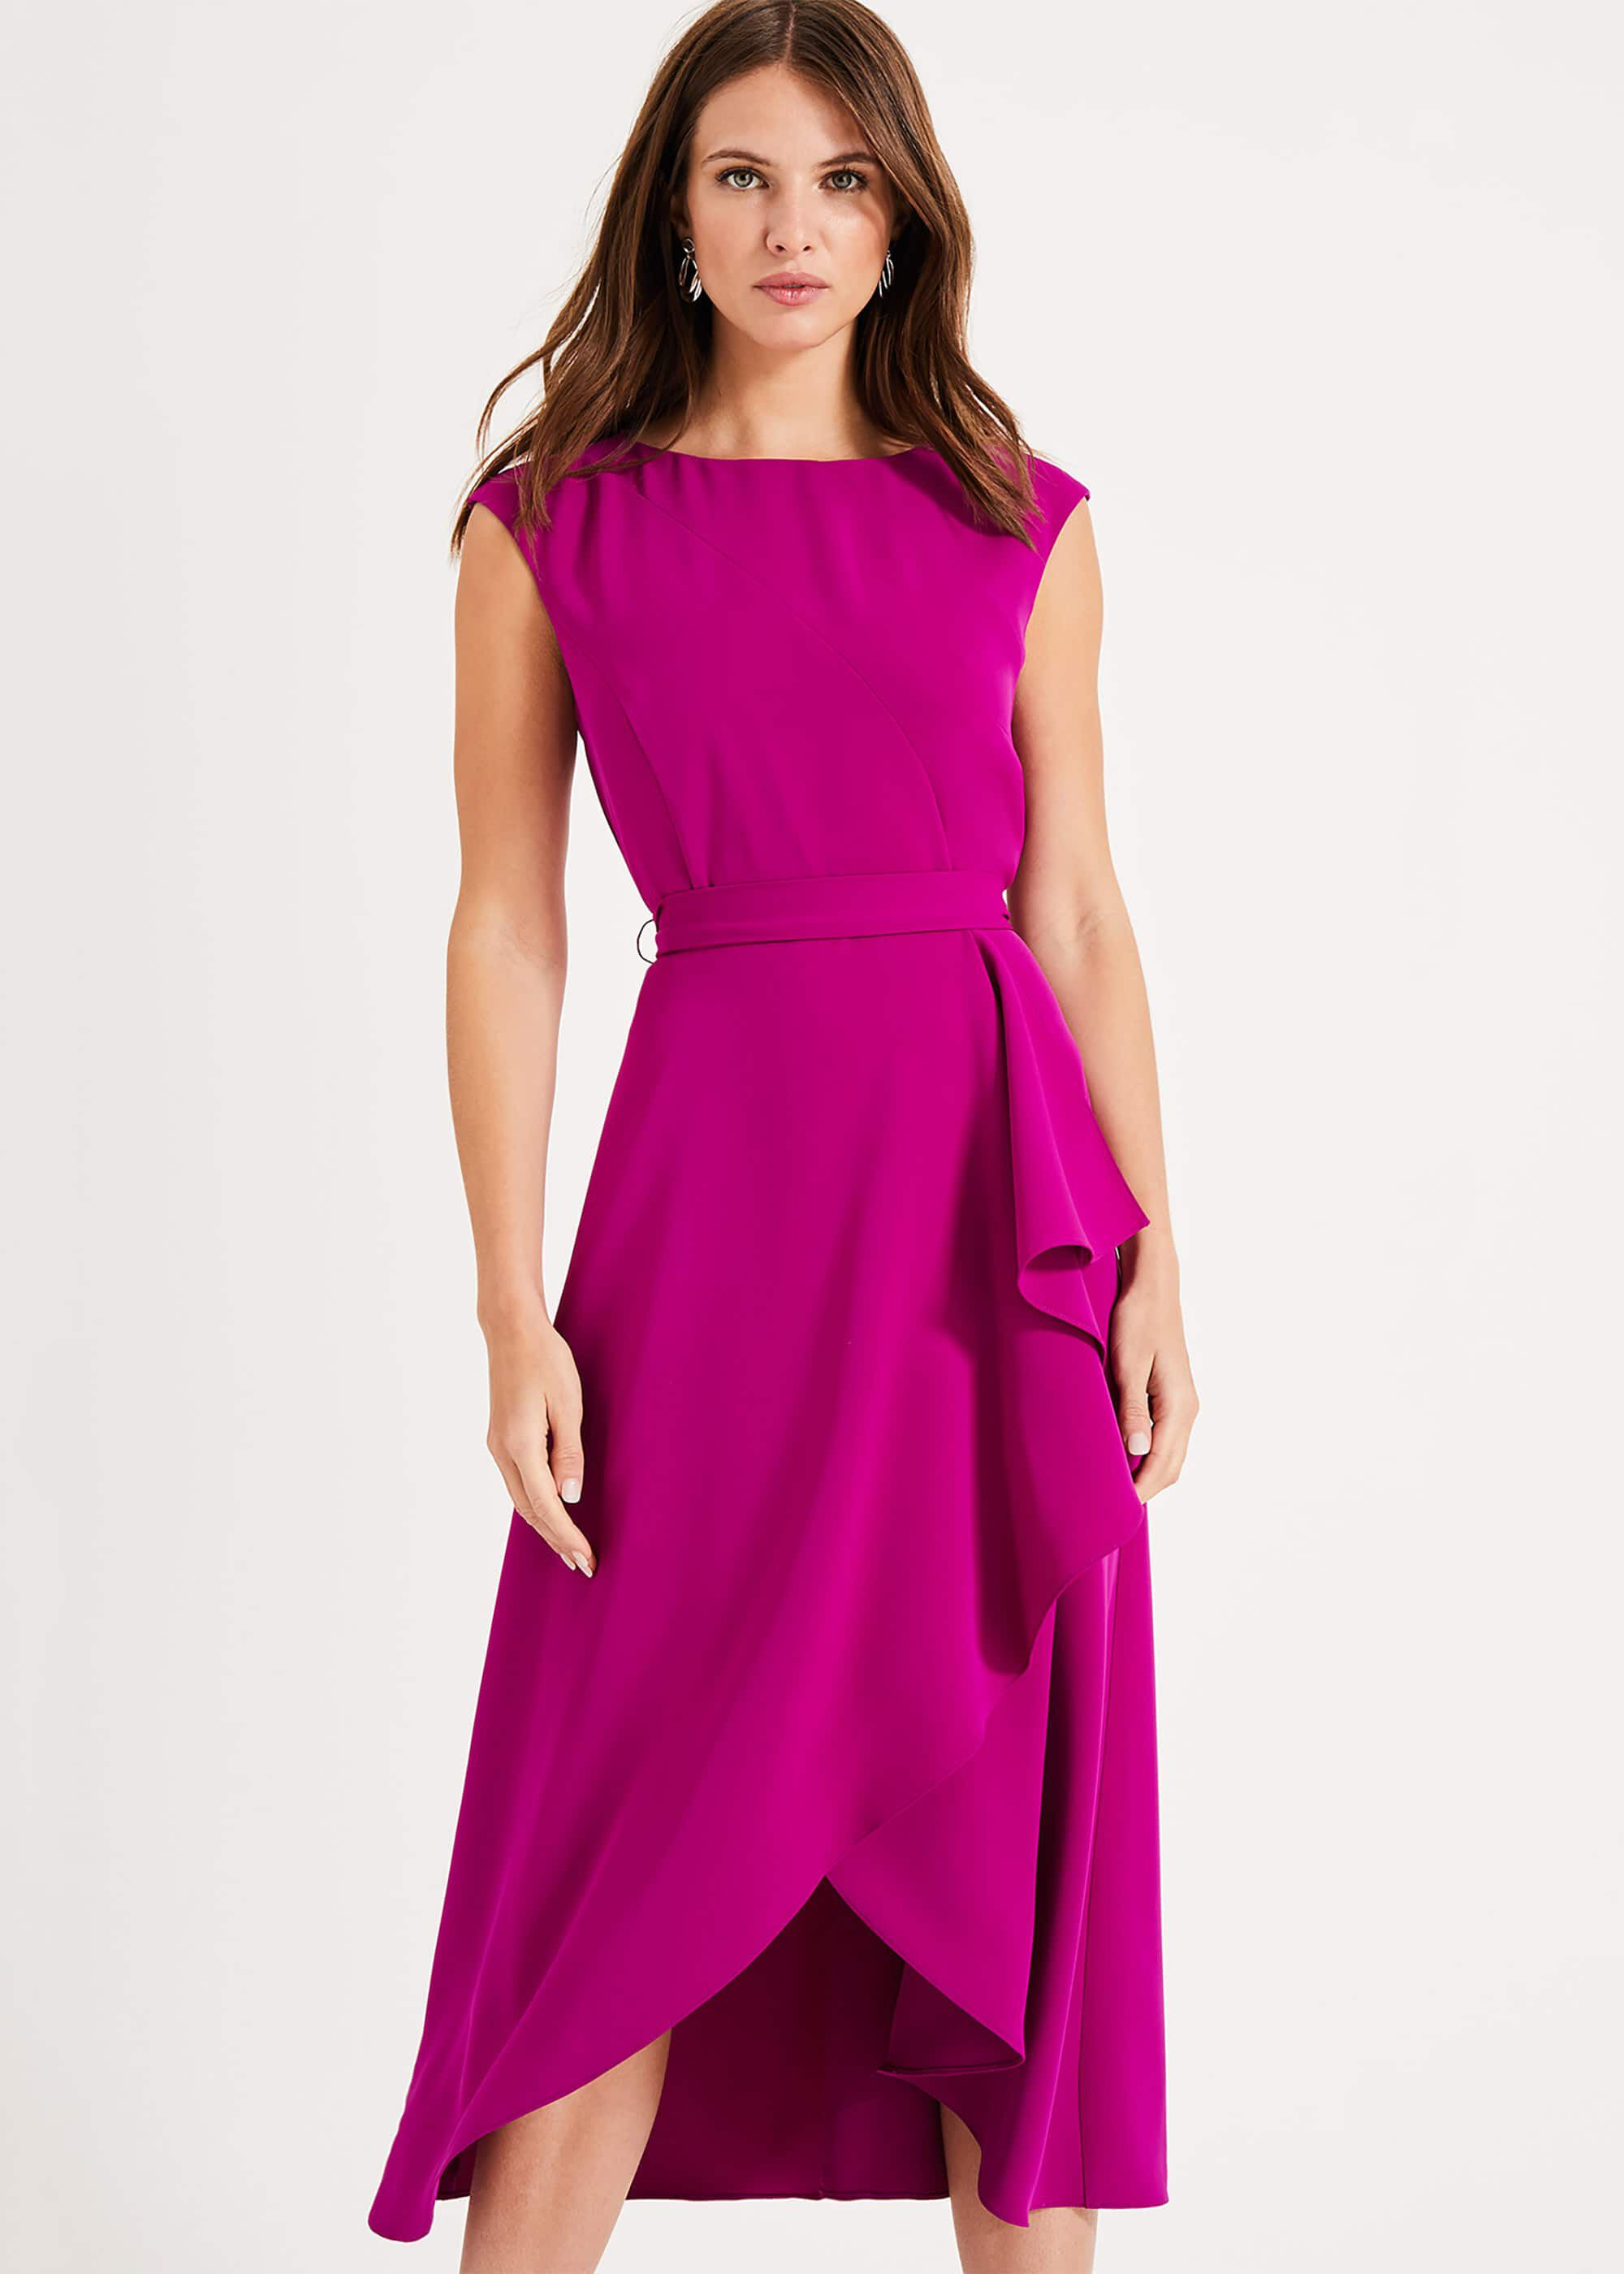 Phase Eight Rushelle Dress, Purple, Fit & Flare